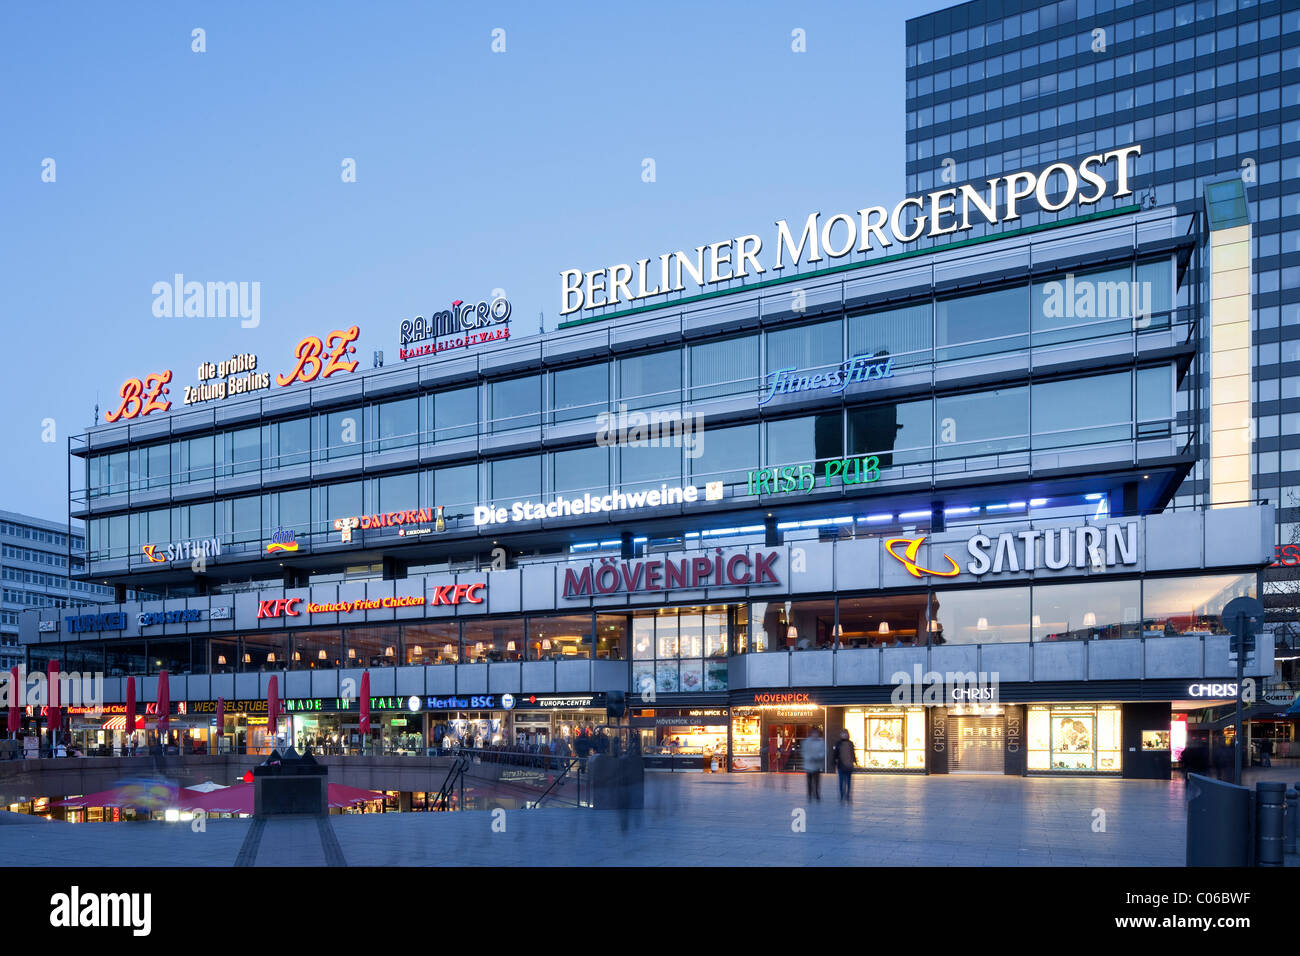 europa center shopping mall charlottenburg district berlin stock photo 34561787 alamy. Black Bedroom Furniture Sets. Home Design Ideas